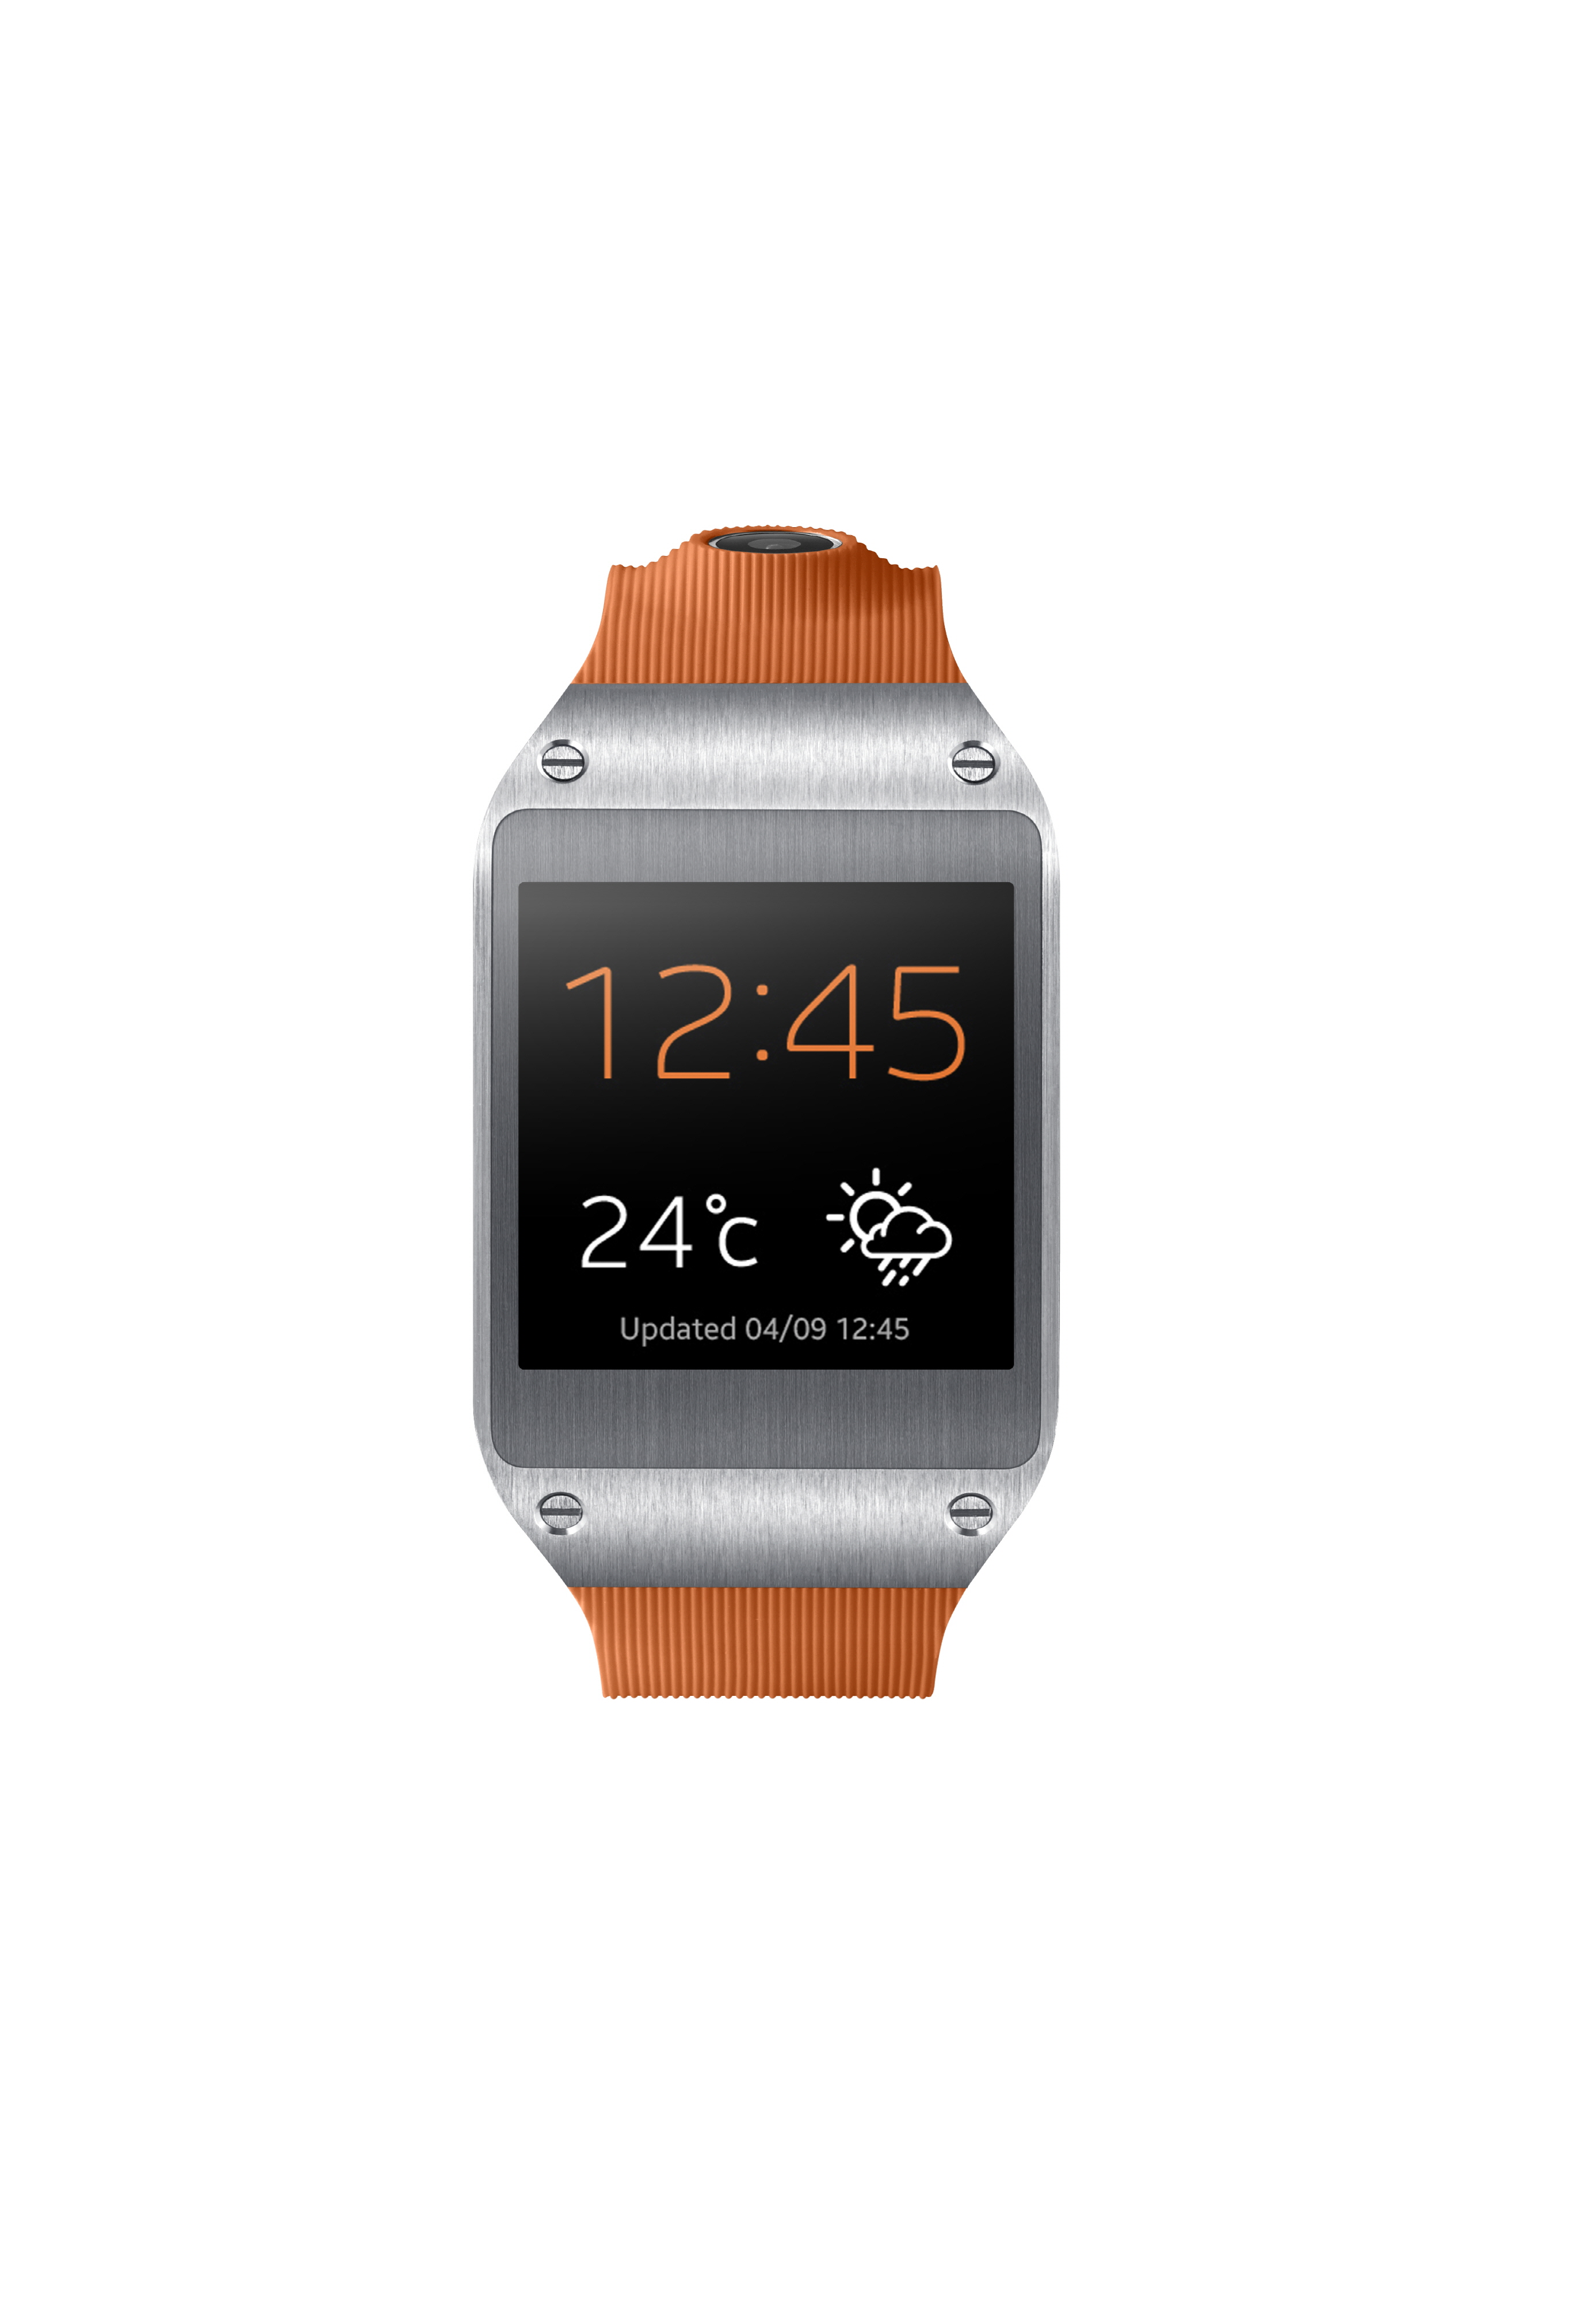 Samsung Unveils Android-based Galaxy Gear Smartwatch ...